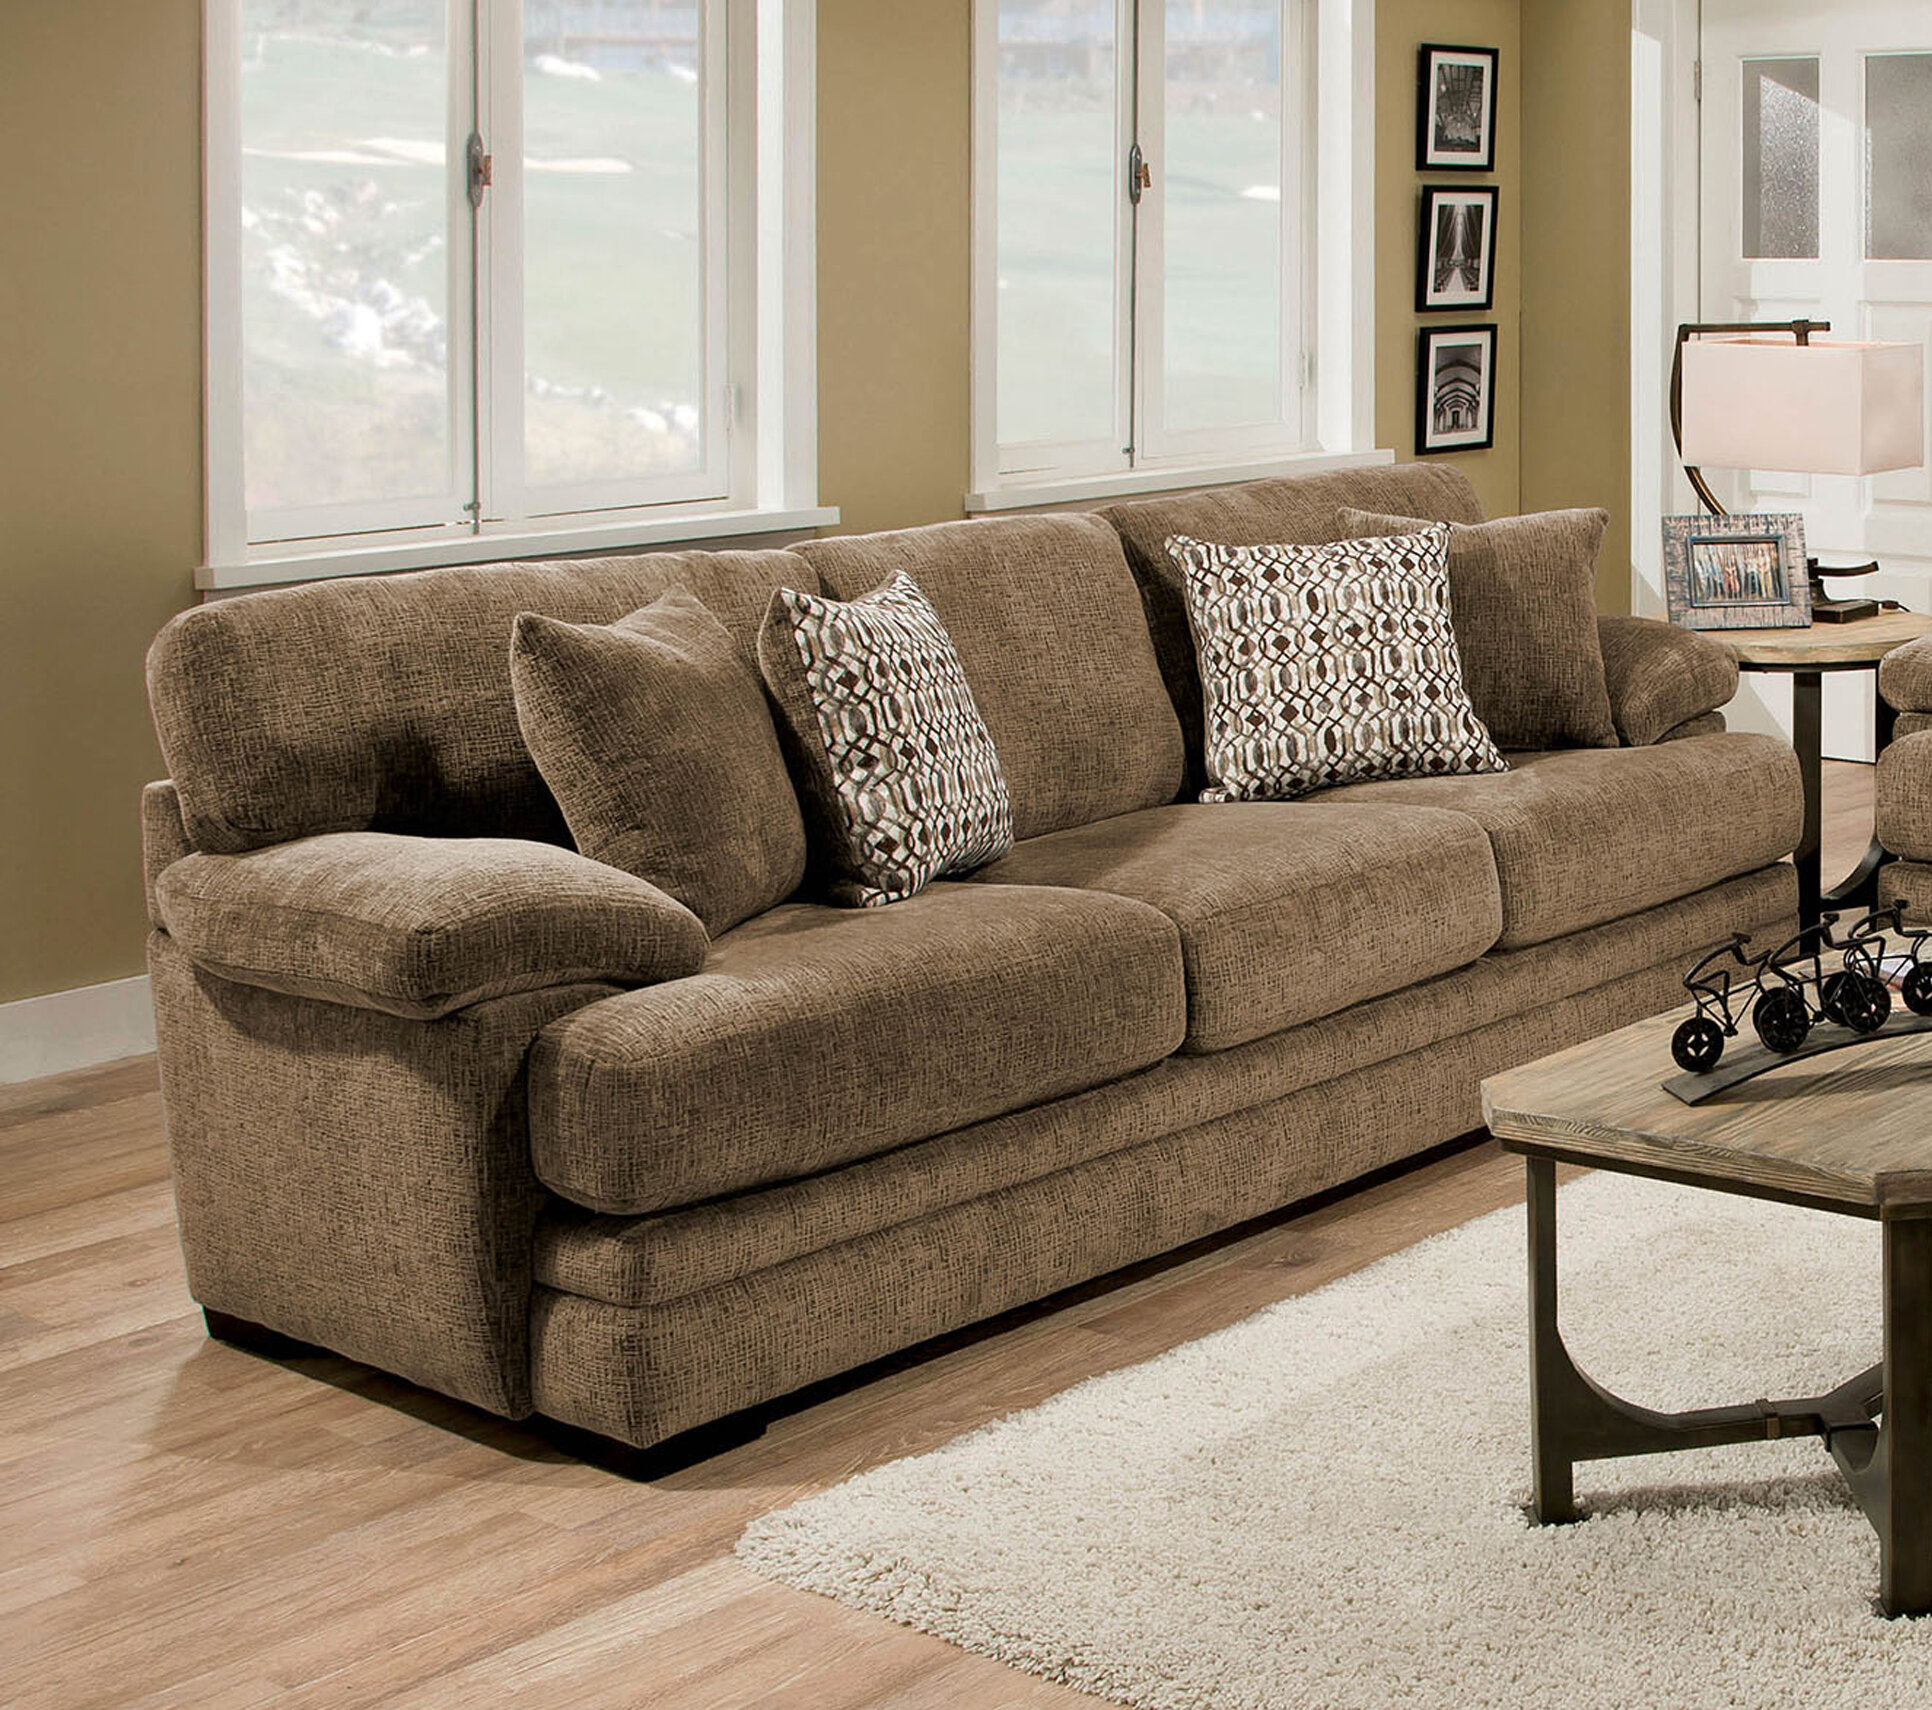 Chenille Furniture